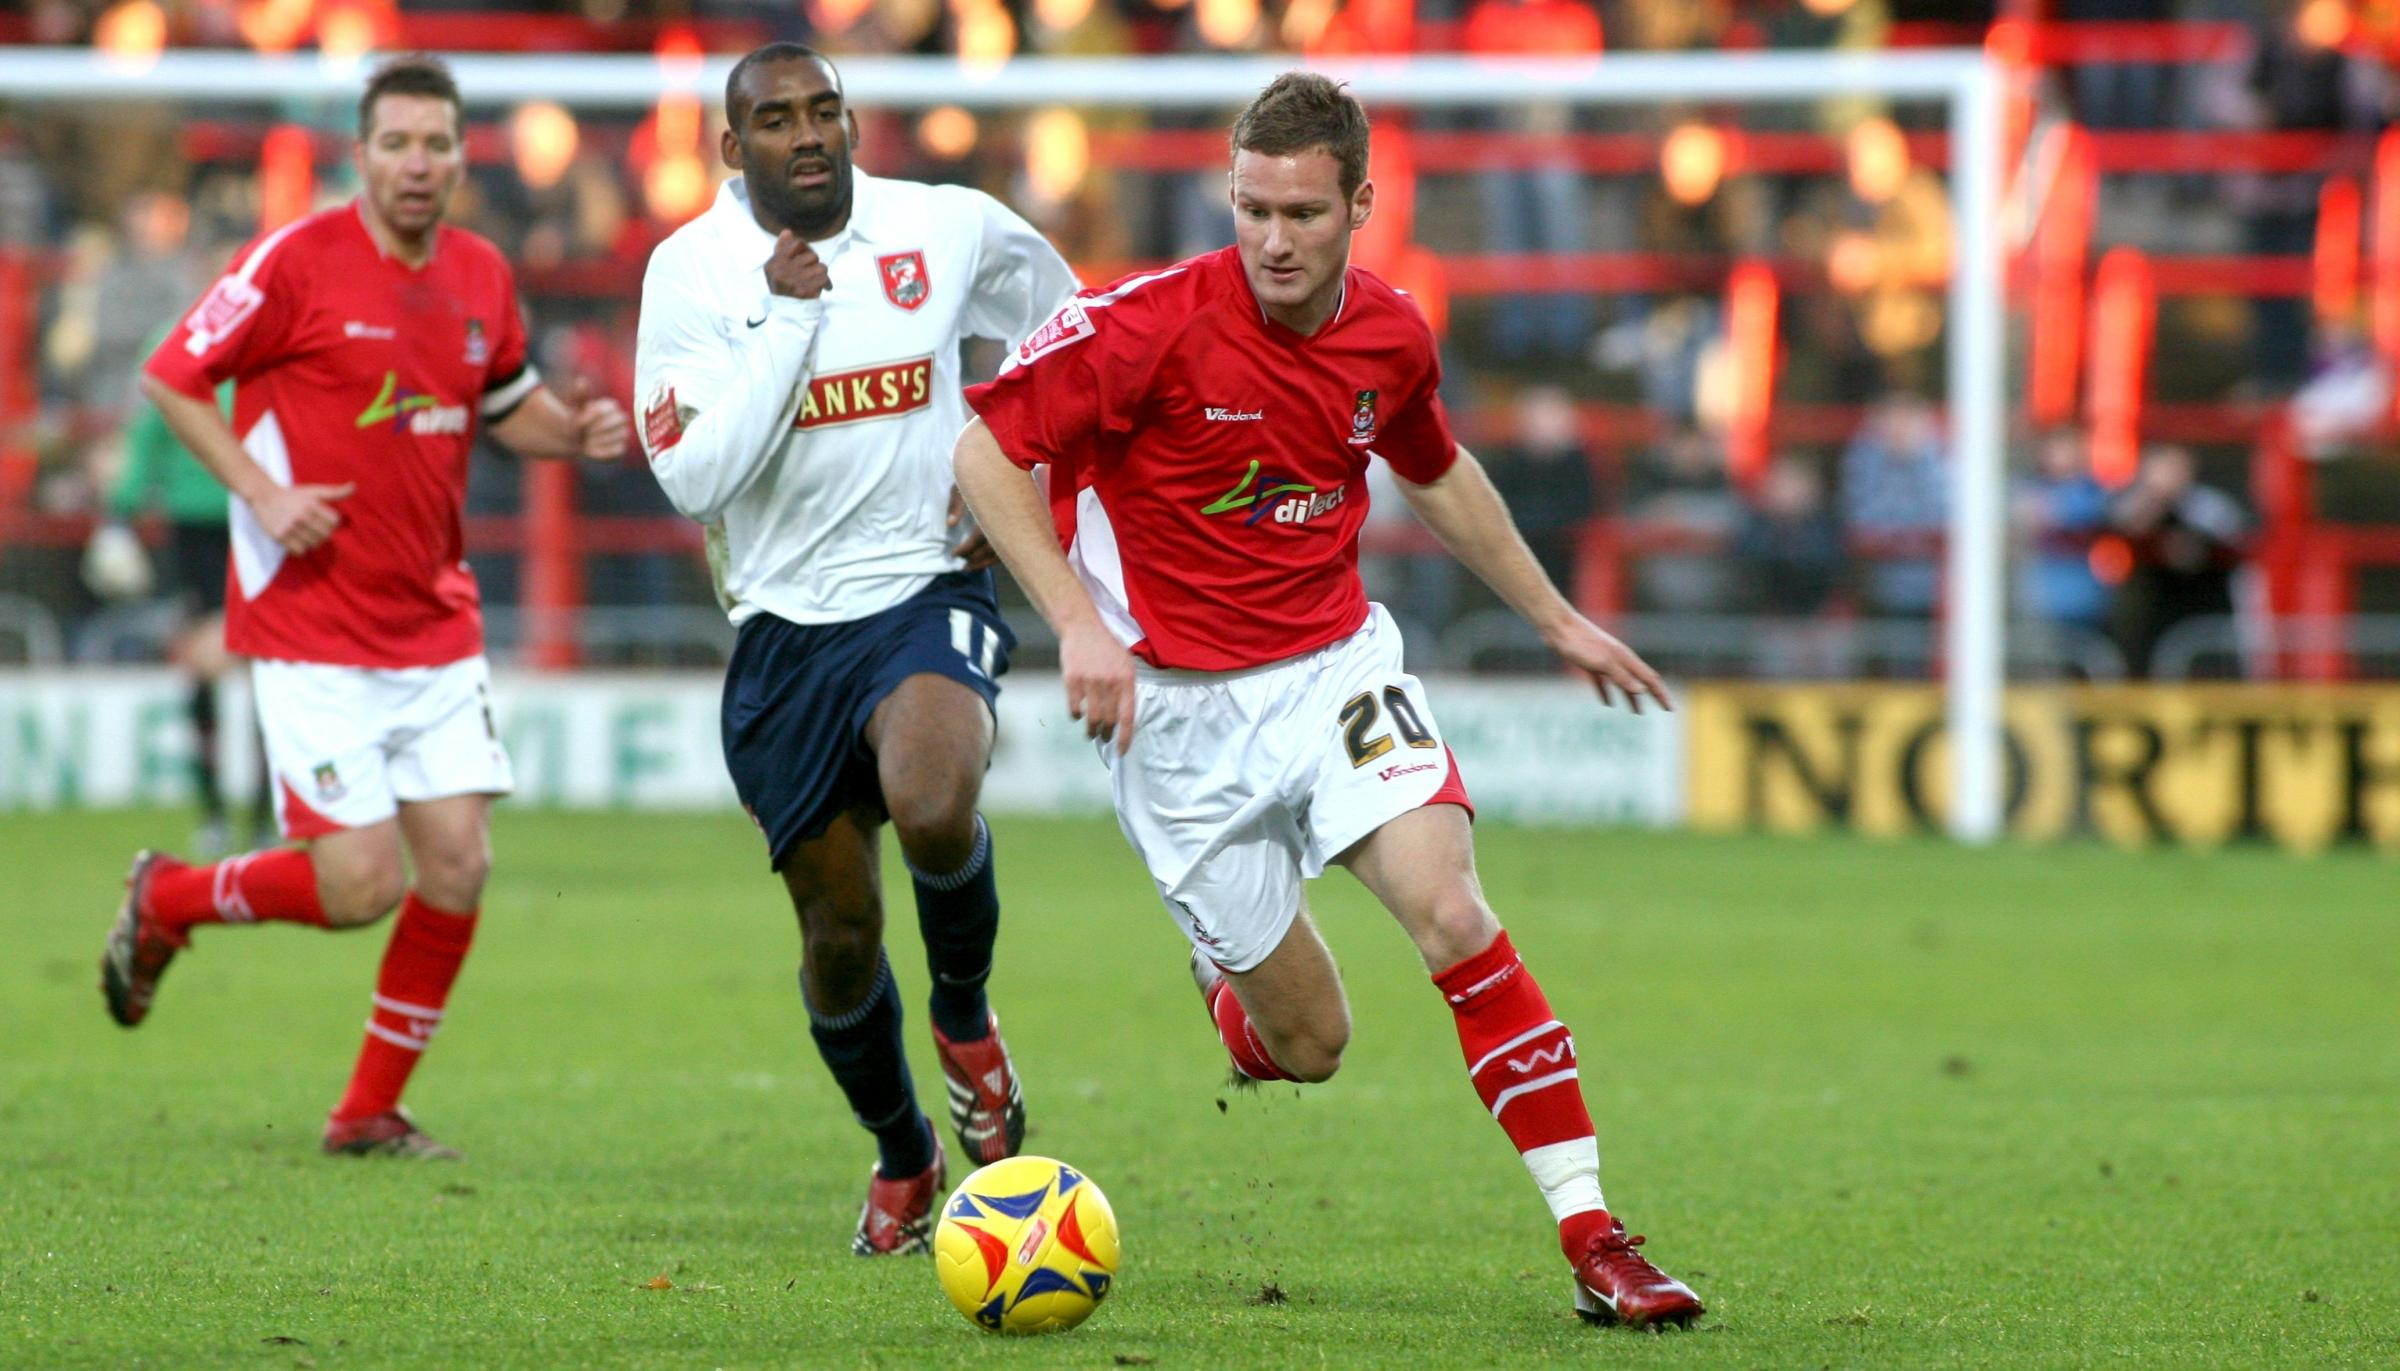 Former Wrexham AFC winger Matty Done is going back to where it all began